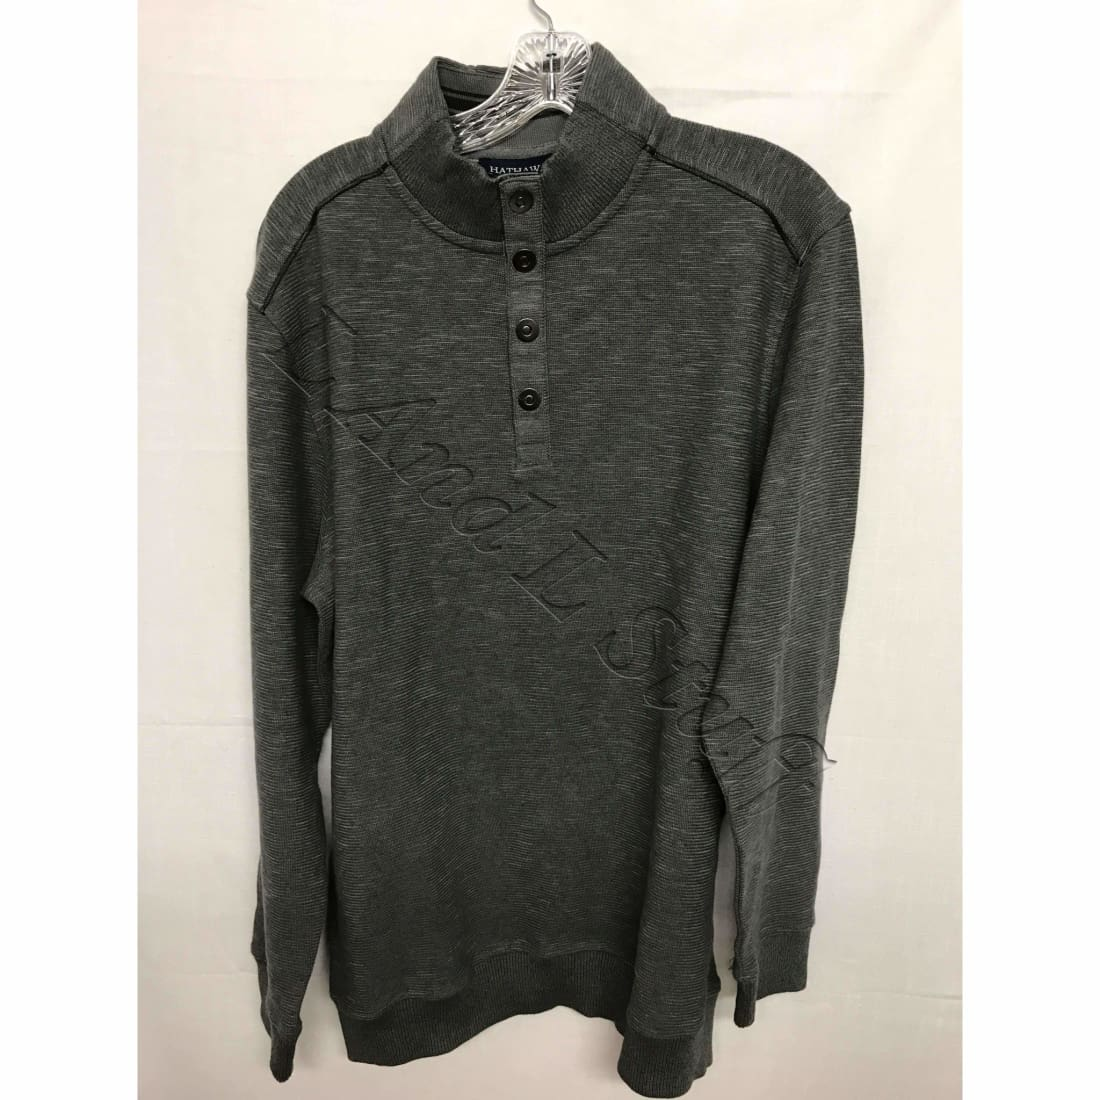 Hathaway Mens Ribbed Knit Sweater Large / Grey Sweaters